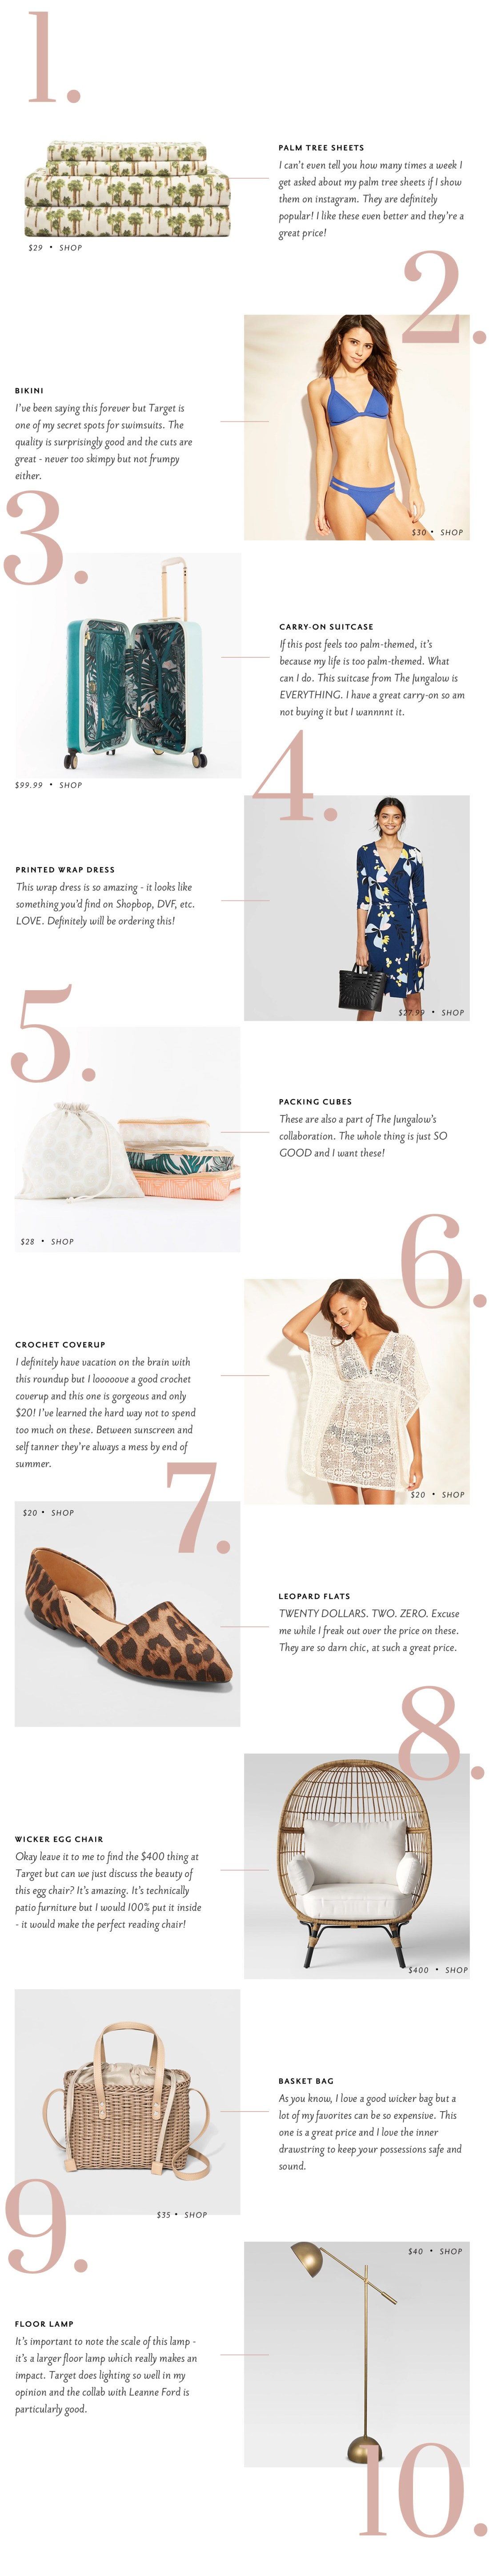 10 Things I Want for Spring from Target